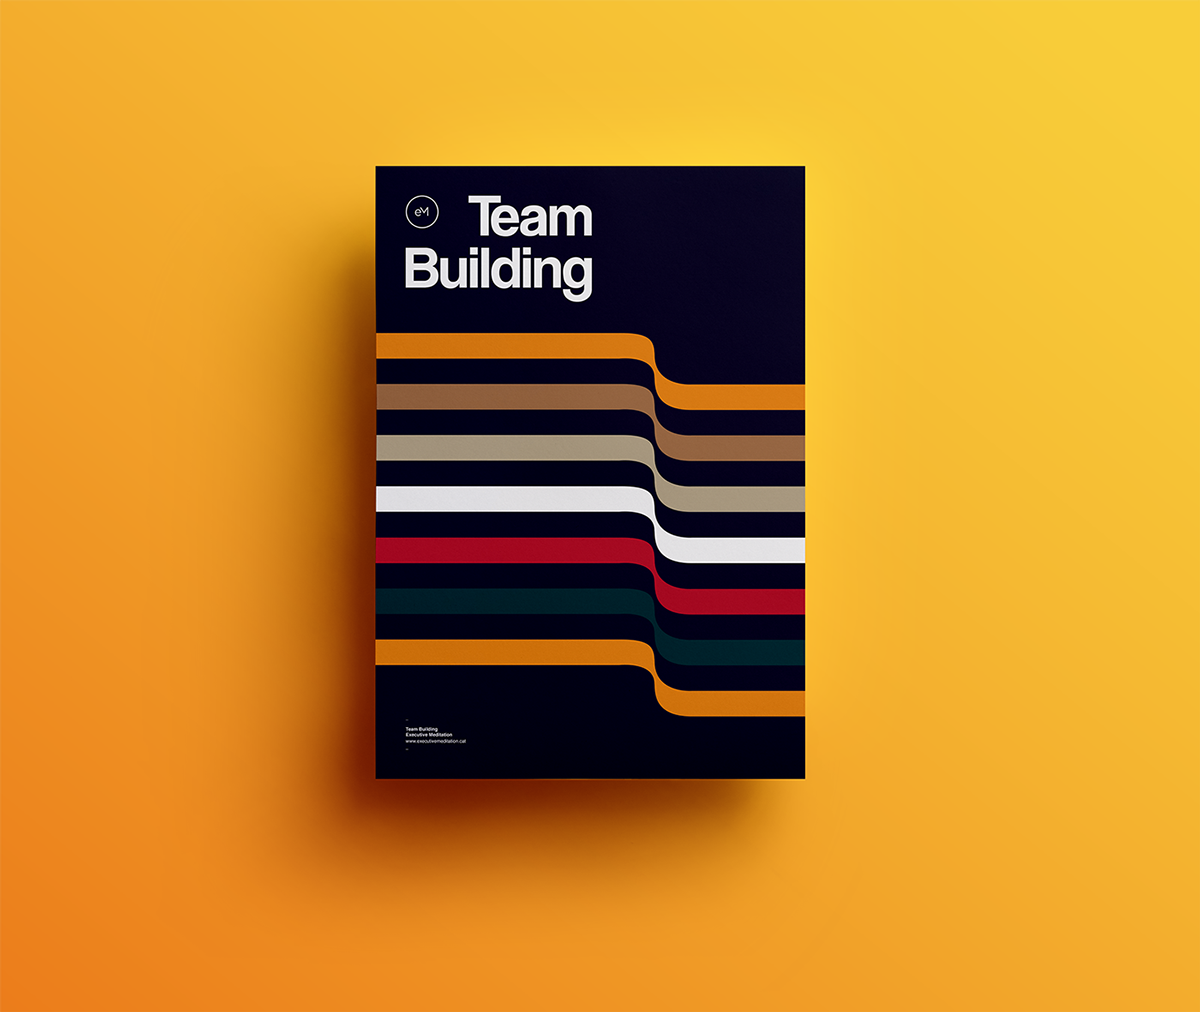 Swiss Poster Xavier Esclusa Trias Behance minimal colors design poster SWISS STYLE POSTER tipo bcn Vic team building executive meditation xet Twopots